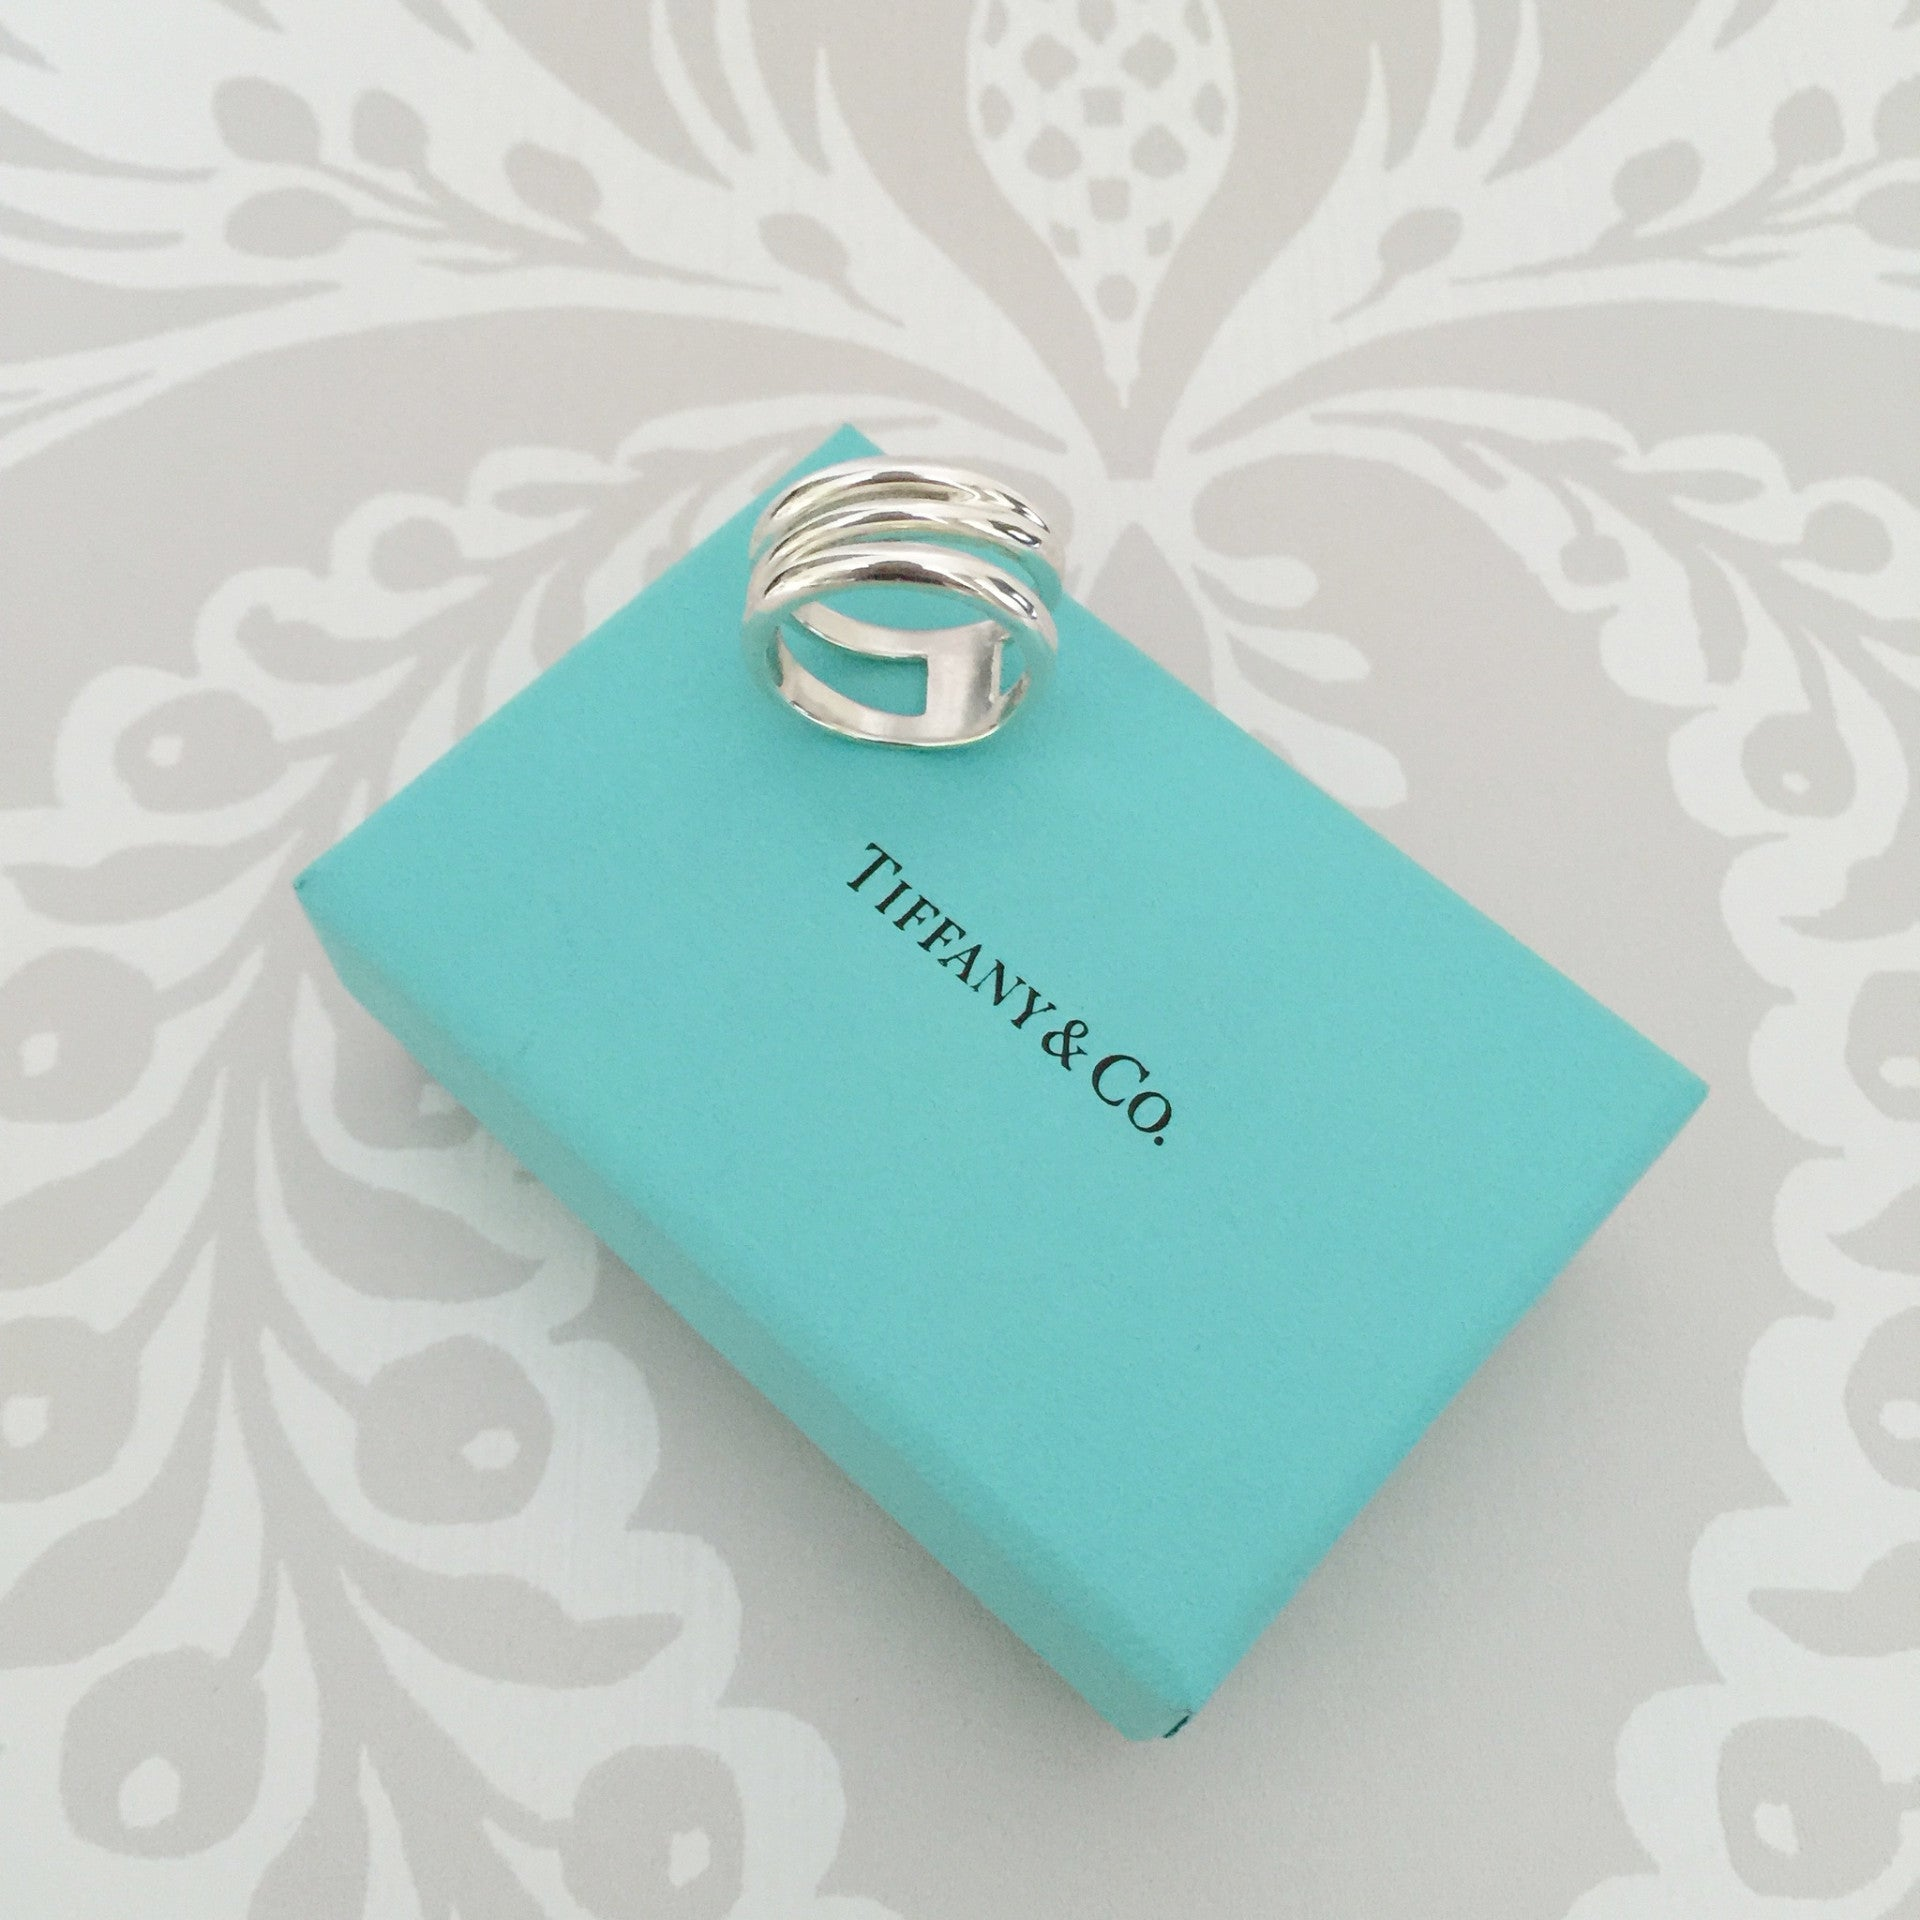 Authentic TIFFANY & CO Ring Size 8